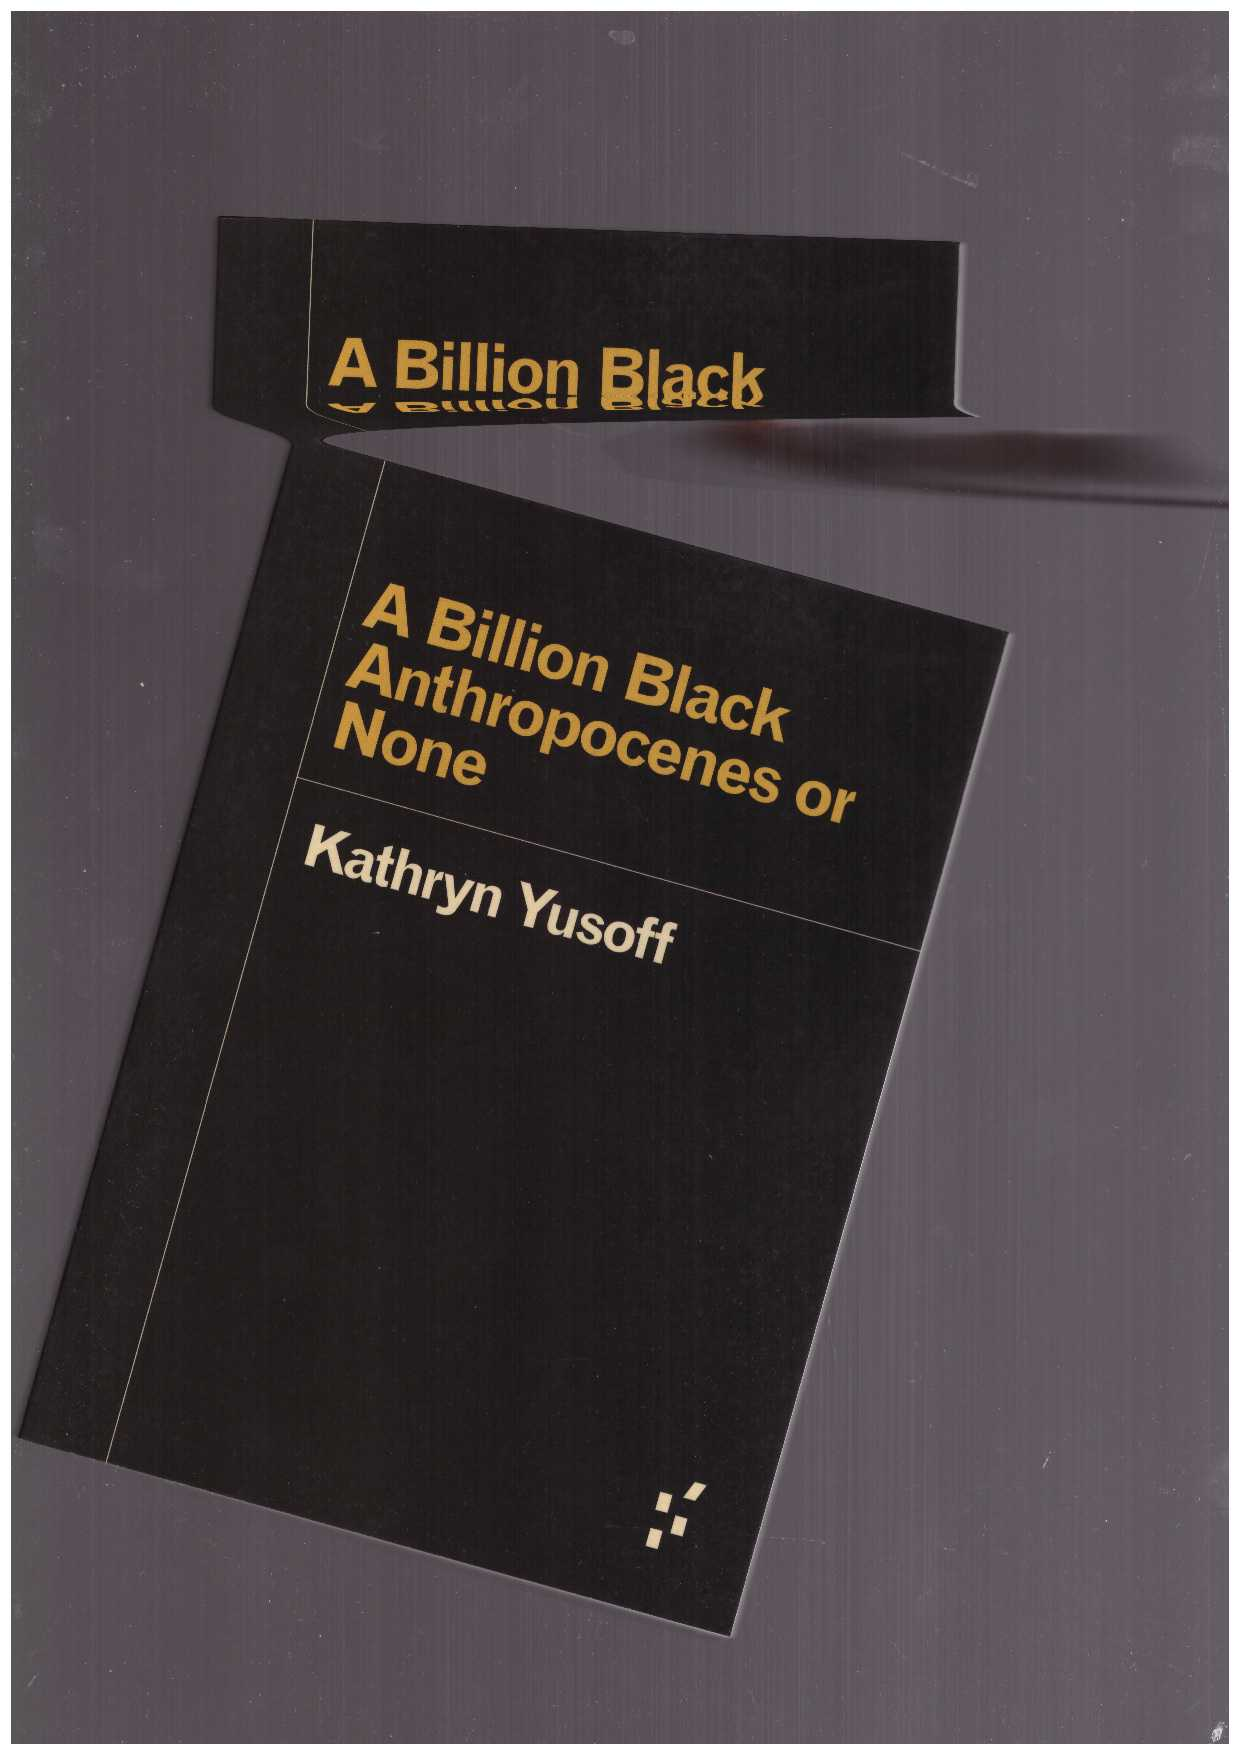 YUSOFF, Kathryn - A Billion Black Anthropocenes or None